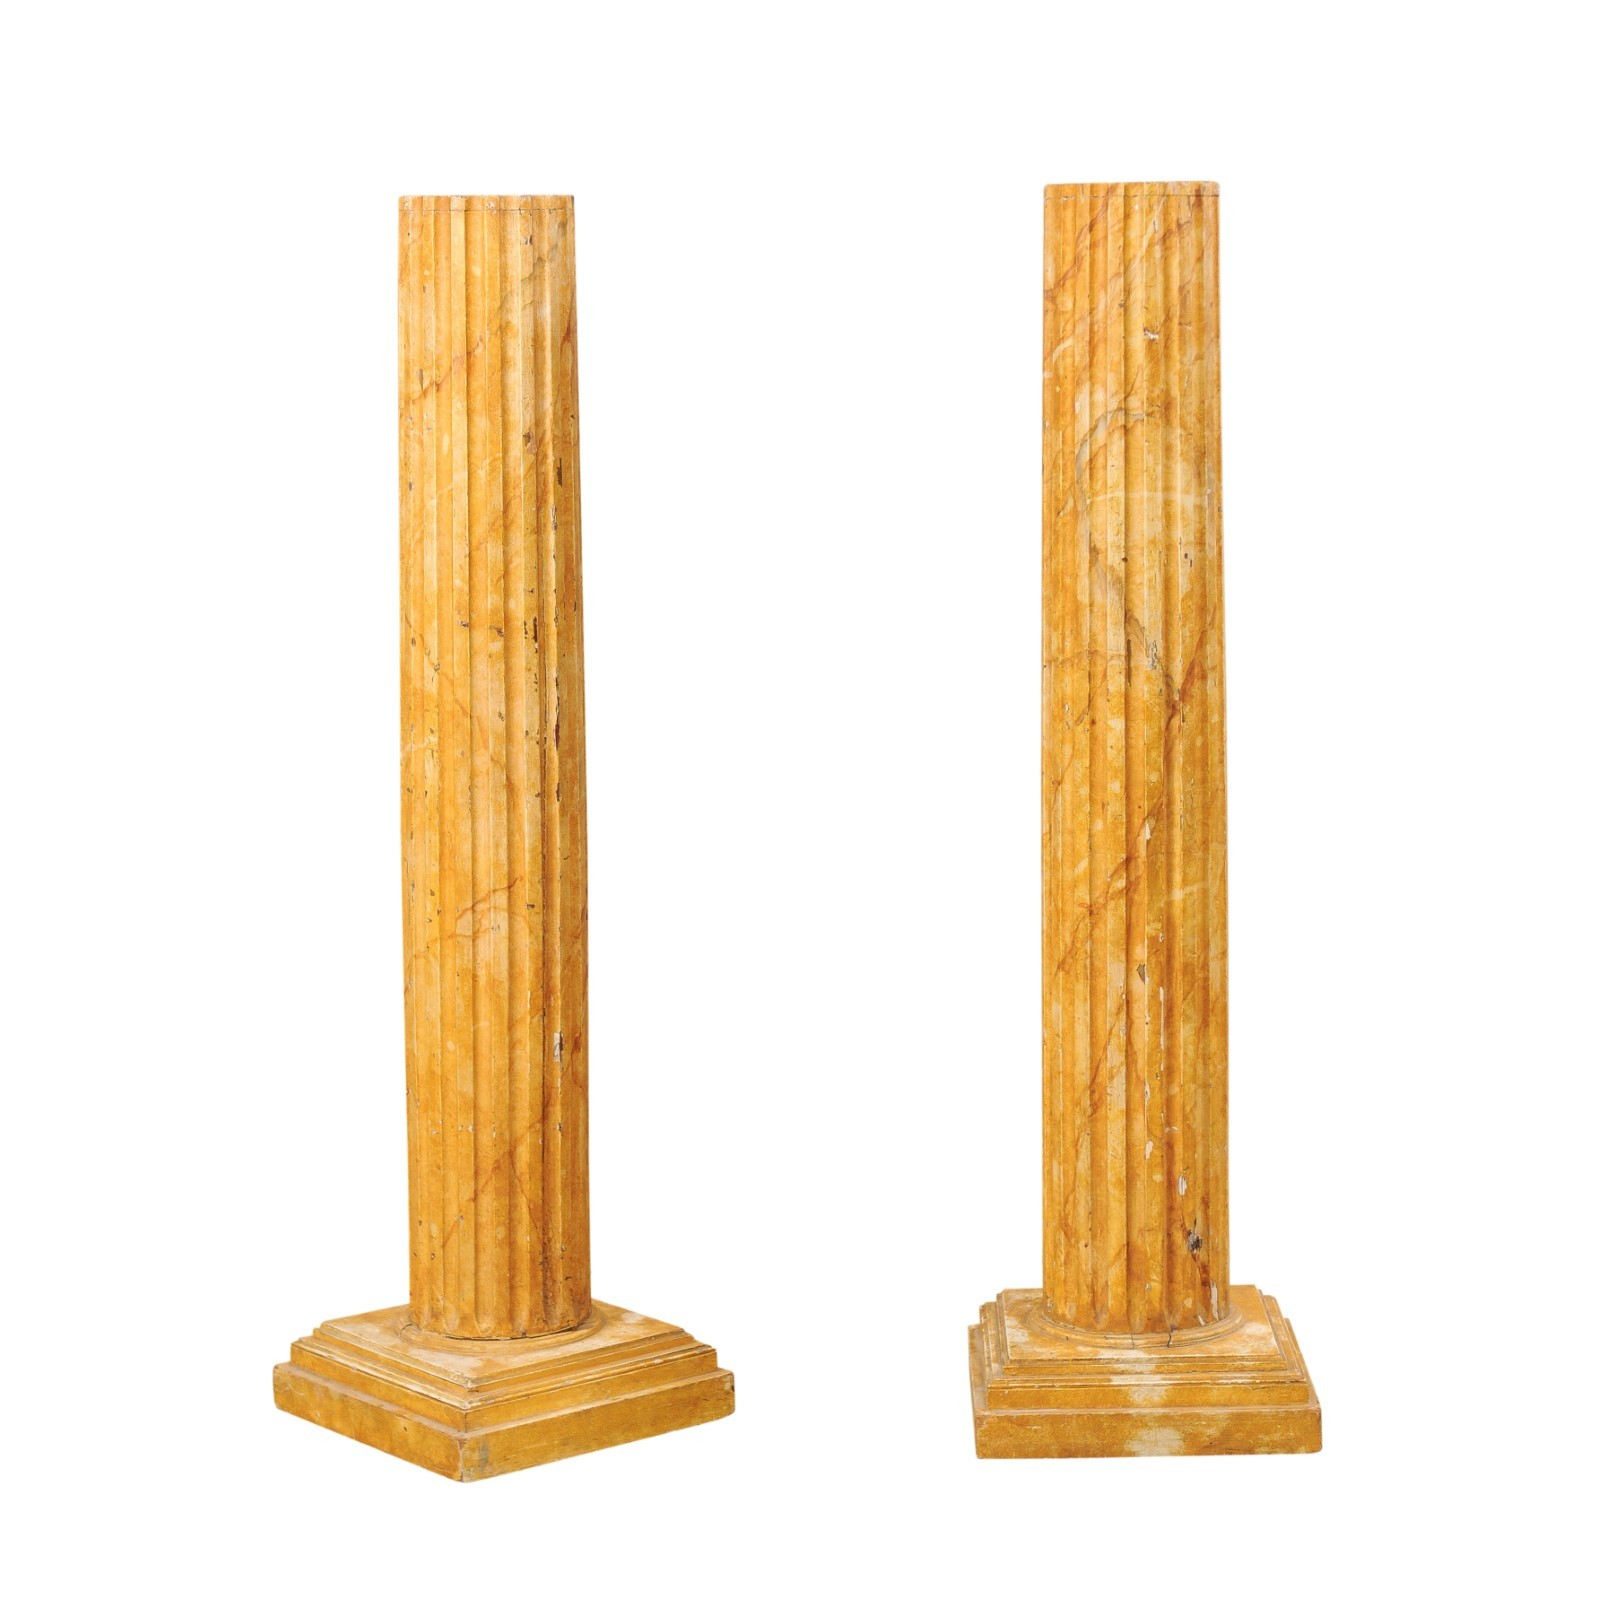 A French pair of Fluted Columns, 5.5 Ft